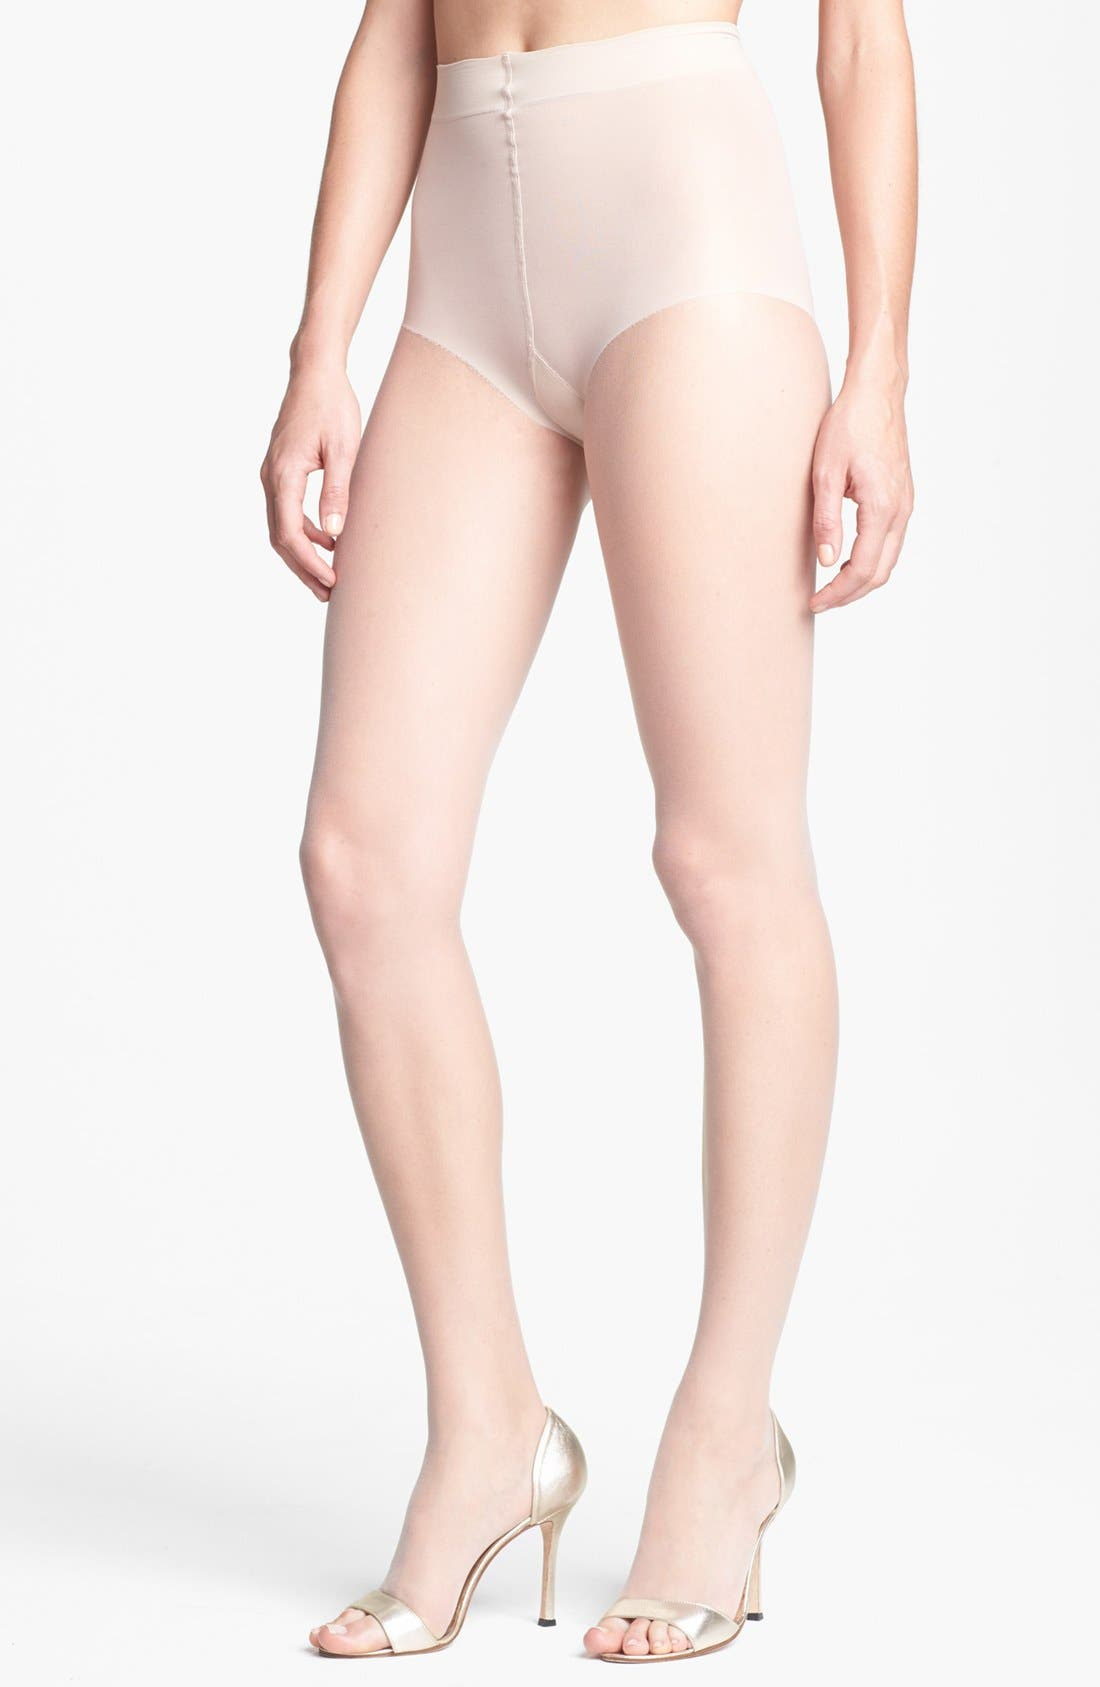 Donna Karan The Nudes Toeless Pantyhose,                             Main thumbnail 1, color,                             A01